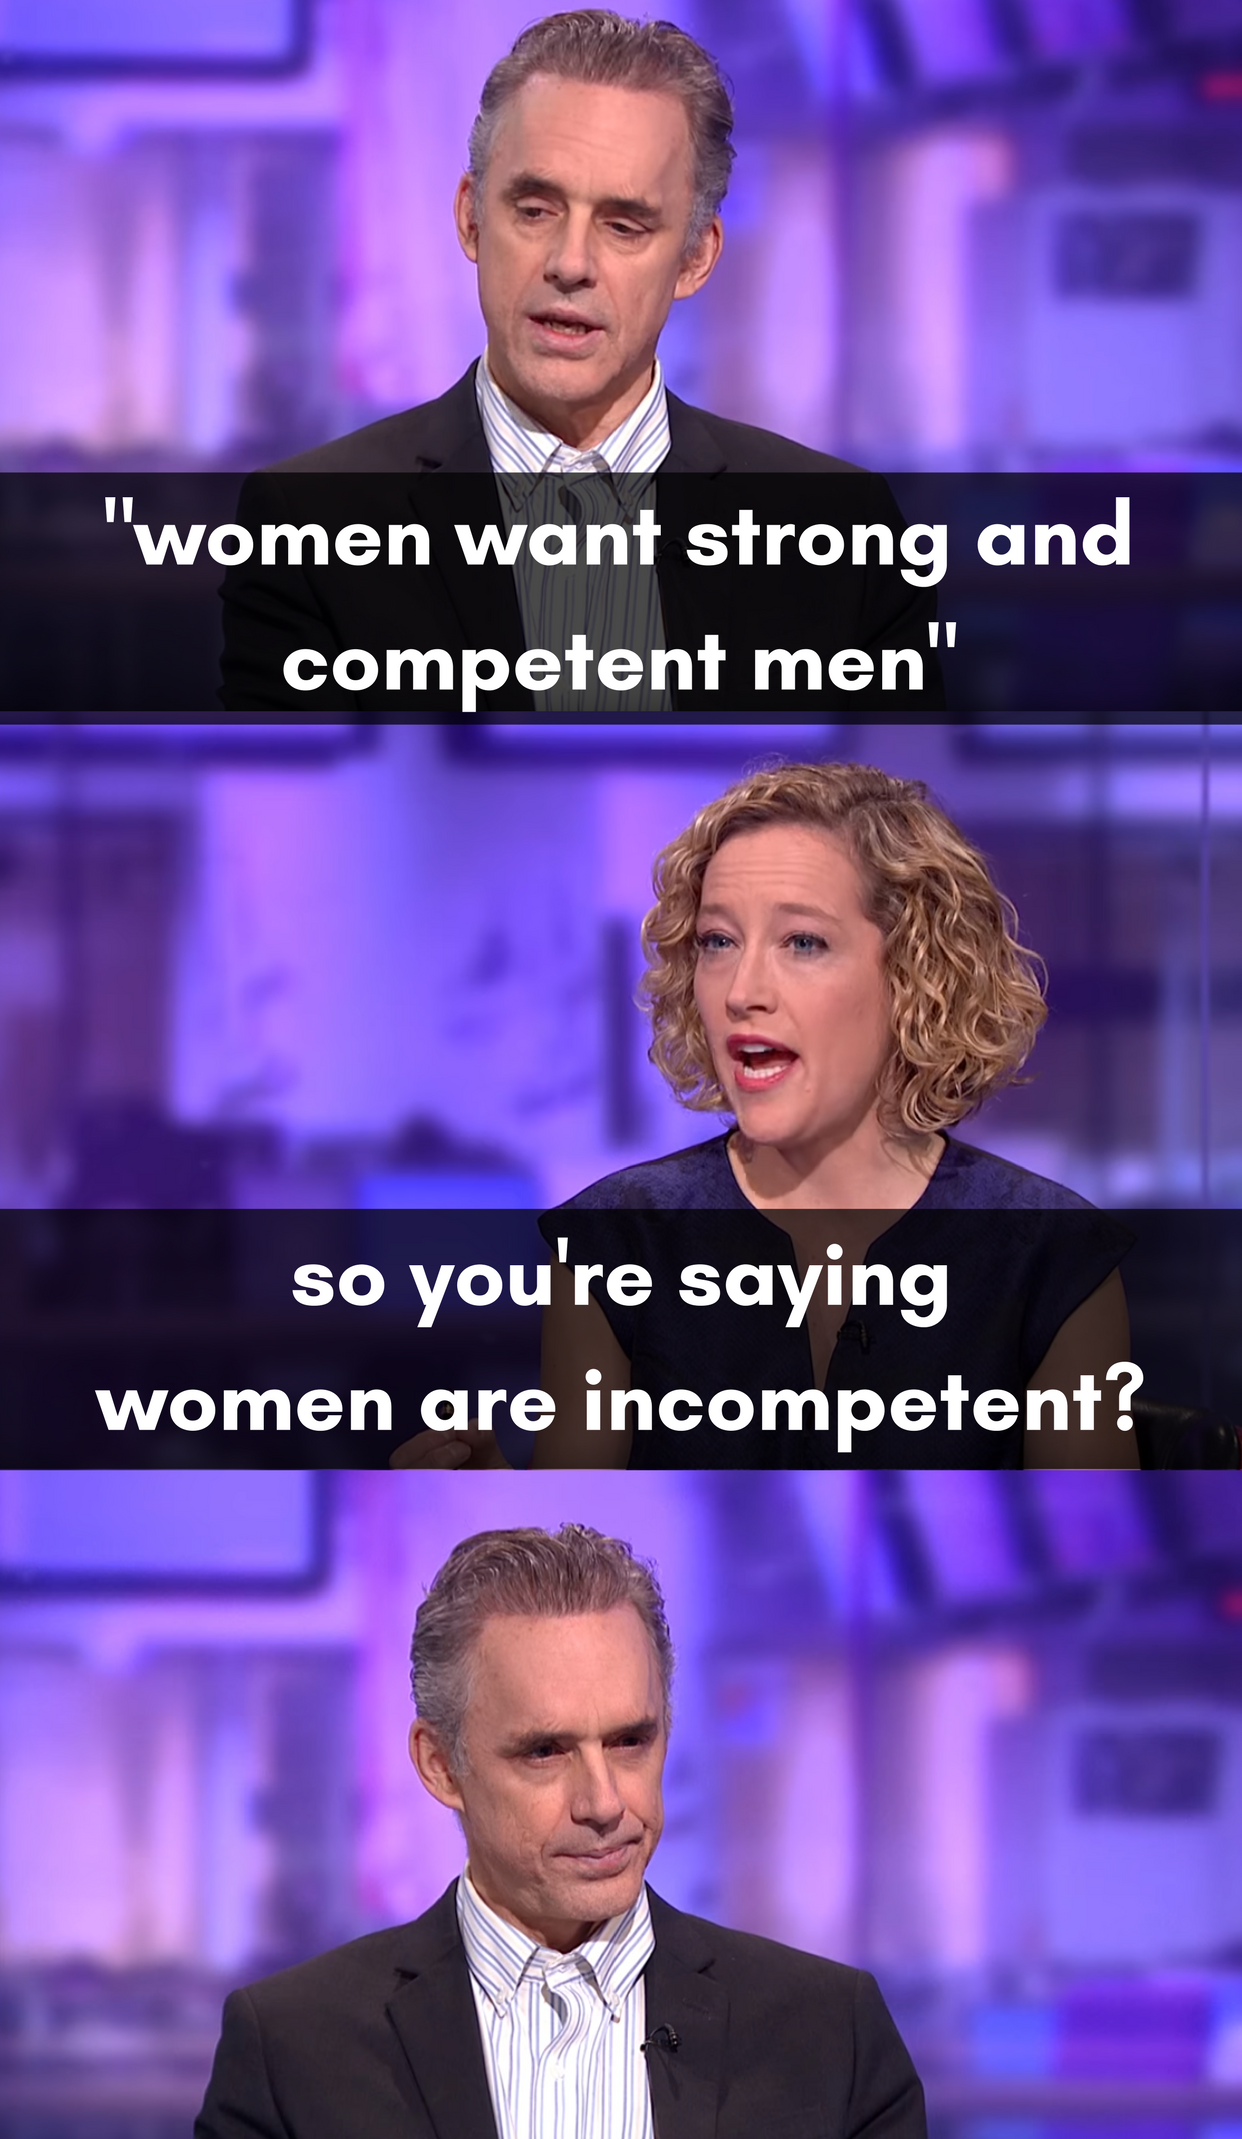 25 Memes That Sum Up Jordan Peterson vs. Cathy Newman